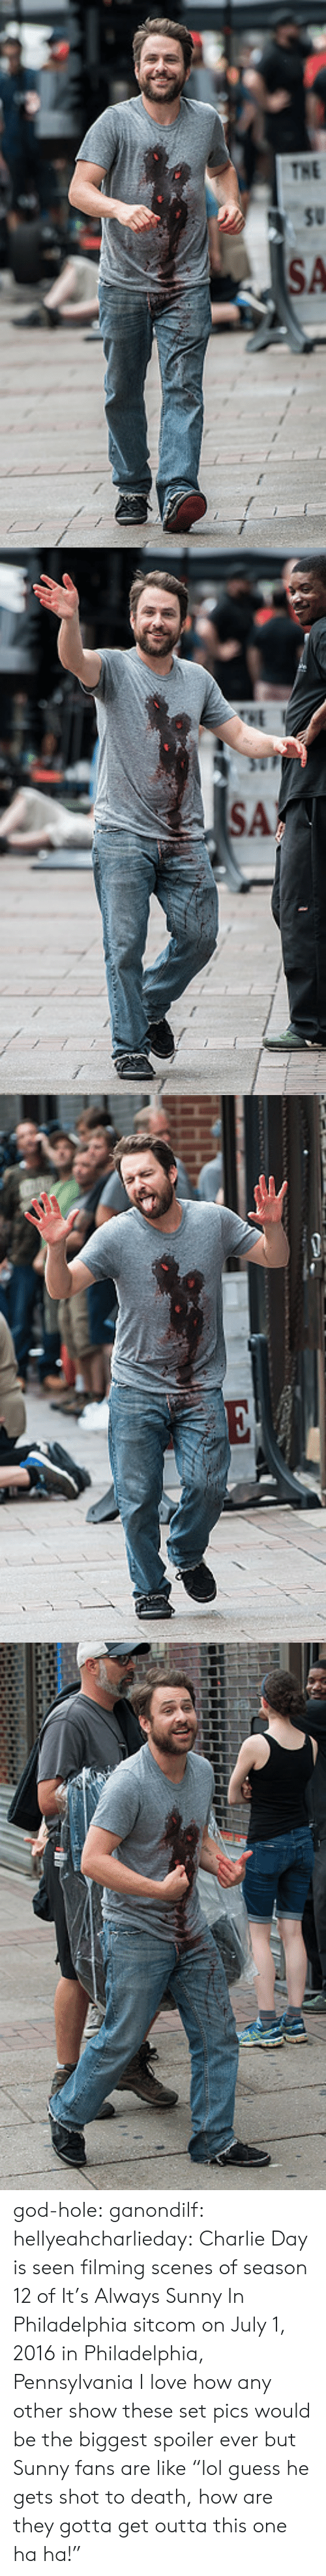 "Always Sunny In: god-hole: ganondilf:  hellyeahcharlieday:  Charlie Day is seen filming scenes of season 12 of It's Always Sunny In Philadelphia sitcom on July 1, 2016 in Philadelphia, Pennsylvania  I love how any other show these set pics would be the biggest spoiler ever but Sunny fans are like ""lol guess he gets shot to death, how are they gotta get outta this one ha ha!"""